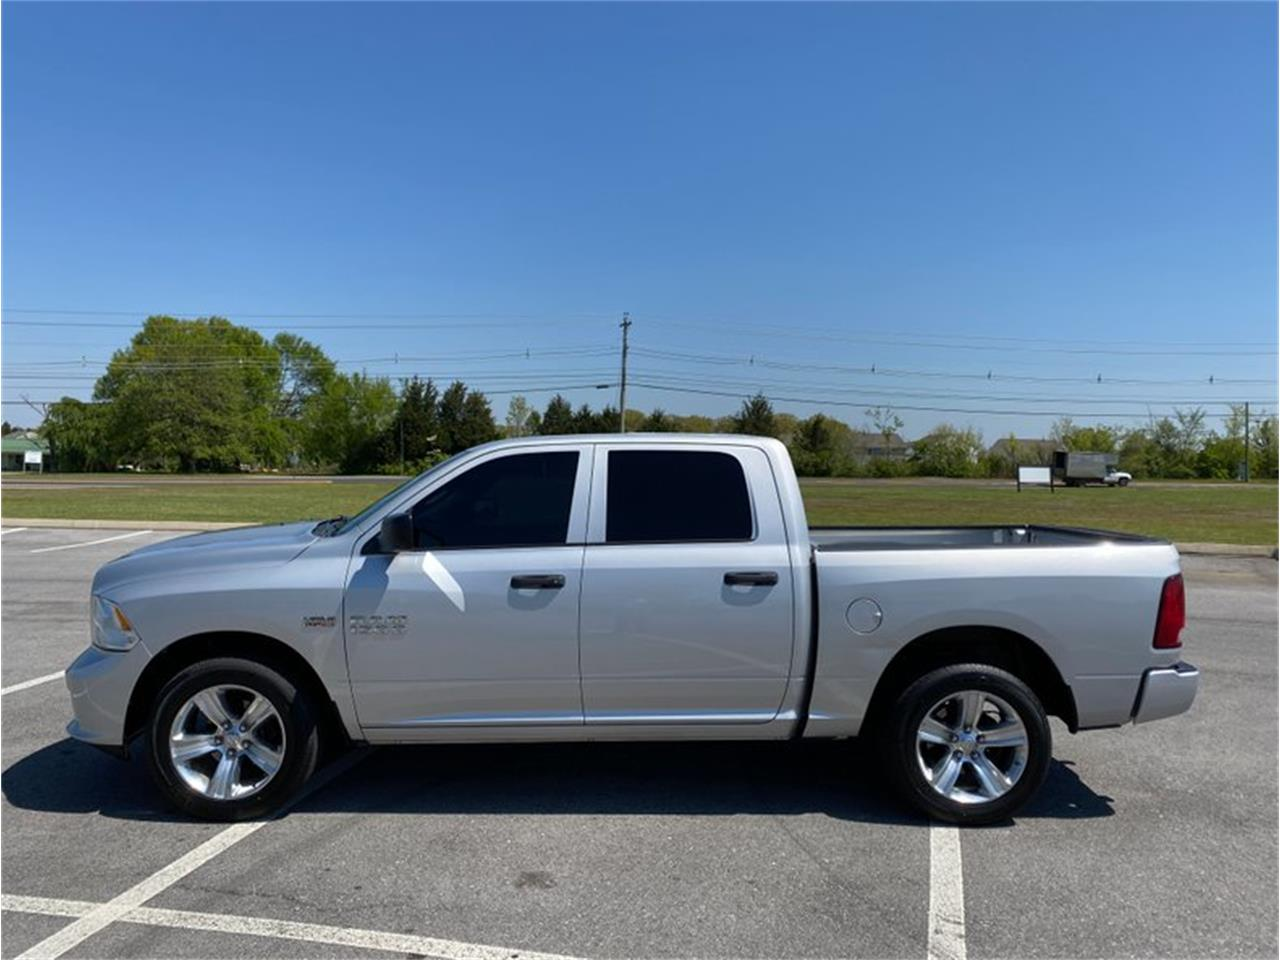 2013 Dodge Ram (CC-1352944) for sale in Lenoir City, Tennessee